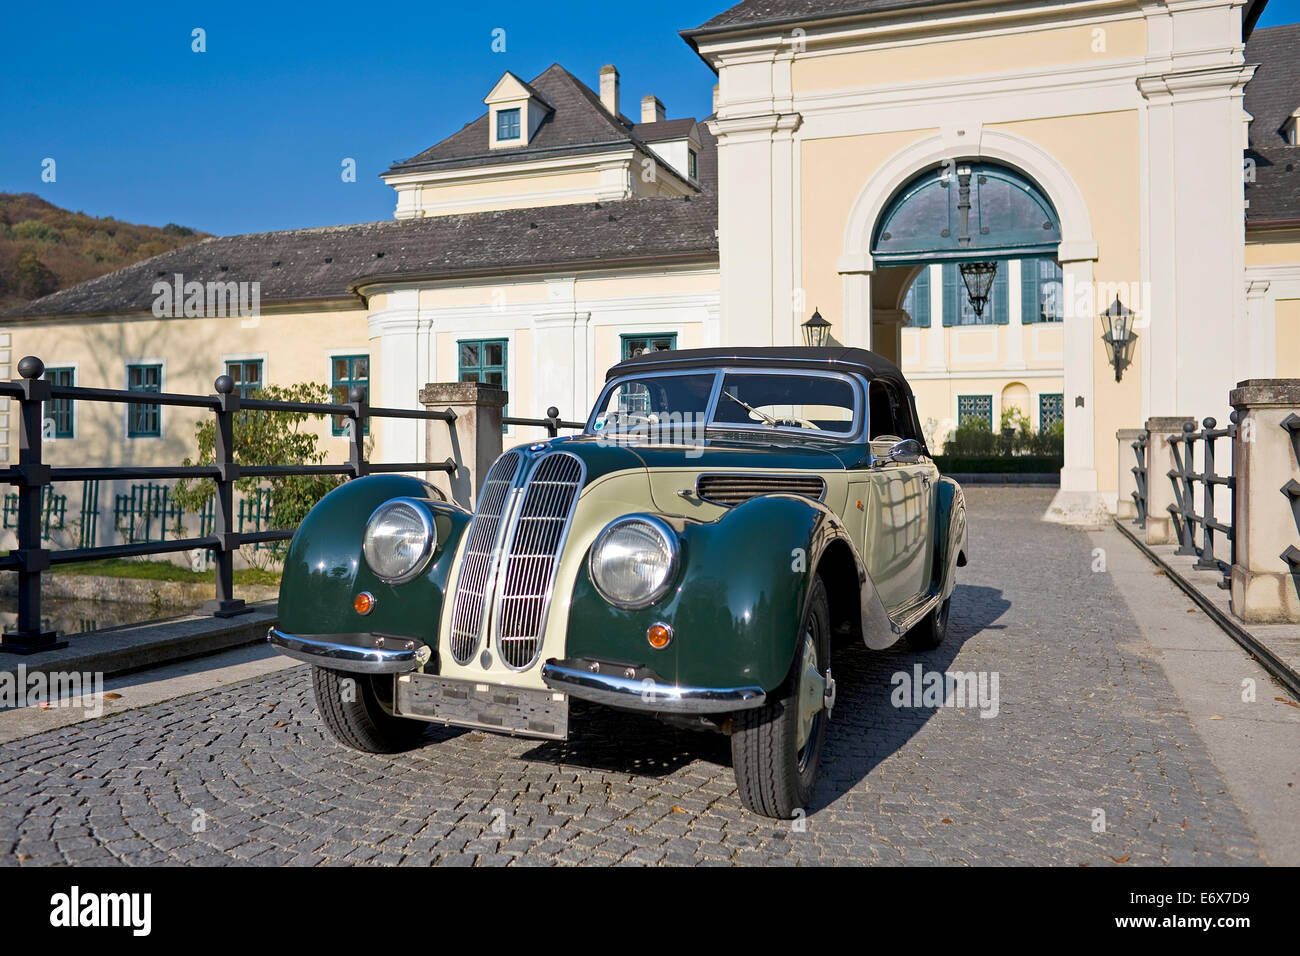 Vintage BMW 327-28, convertible, saloon car, built in 1939 - Stock Image